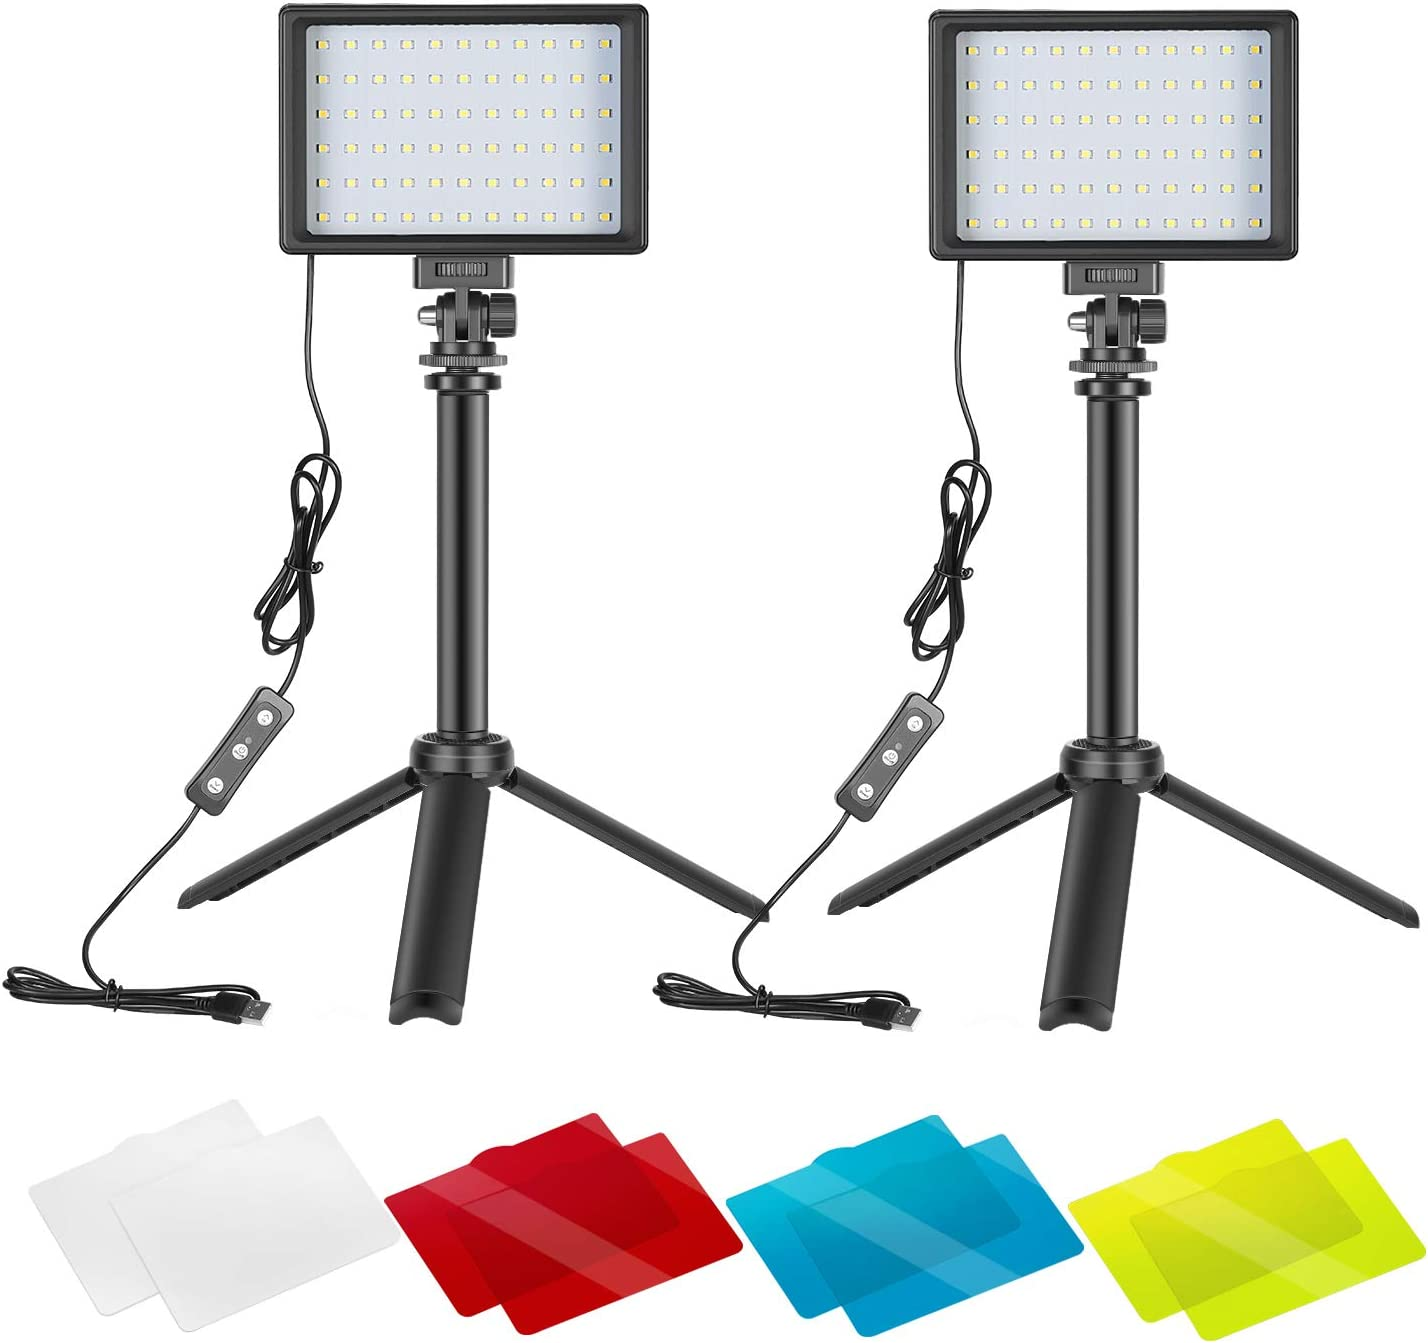 Neewer 2 Packs Portable Photography Lighting Kit Dimmable 5600K USB 66 LED Video Light with Mini Adjustable Tripod Stand and Color Filters for Table Top/Low Angle Photo Video Studio Shooting : Camera & Photo